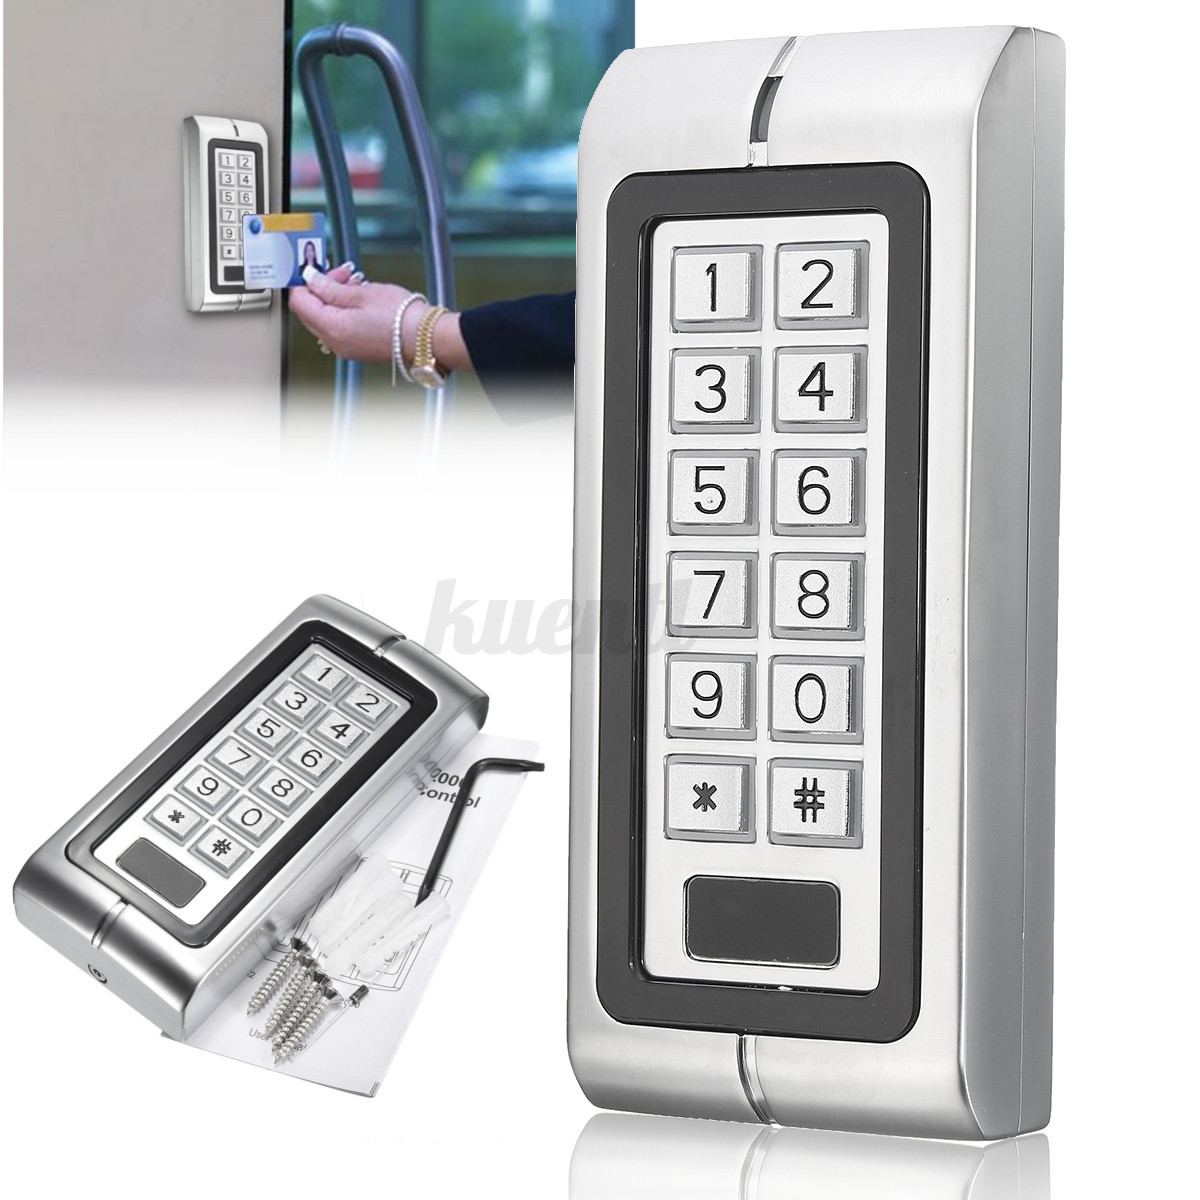 waterproof password keypad card reader entry door lock pc access control system. Black Bedroom Furniture Sets. Home Design Ideas